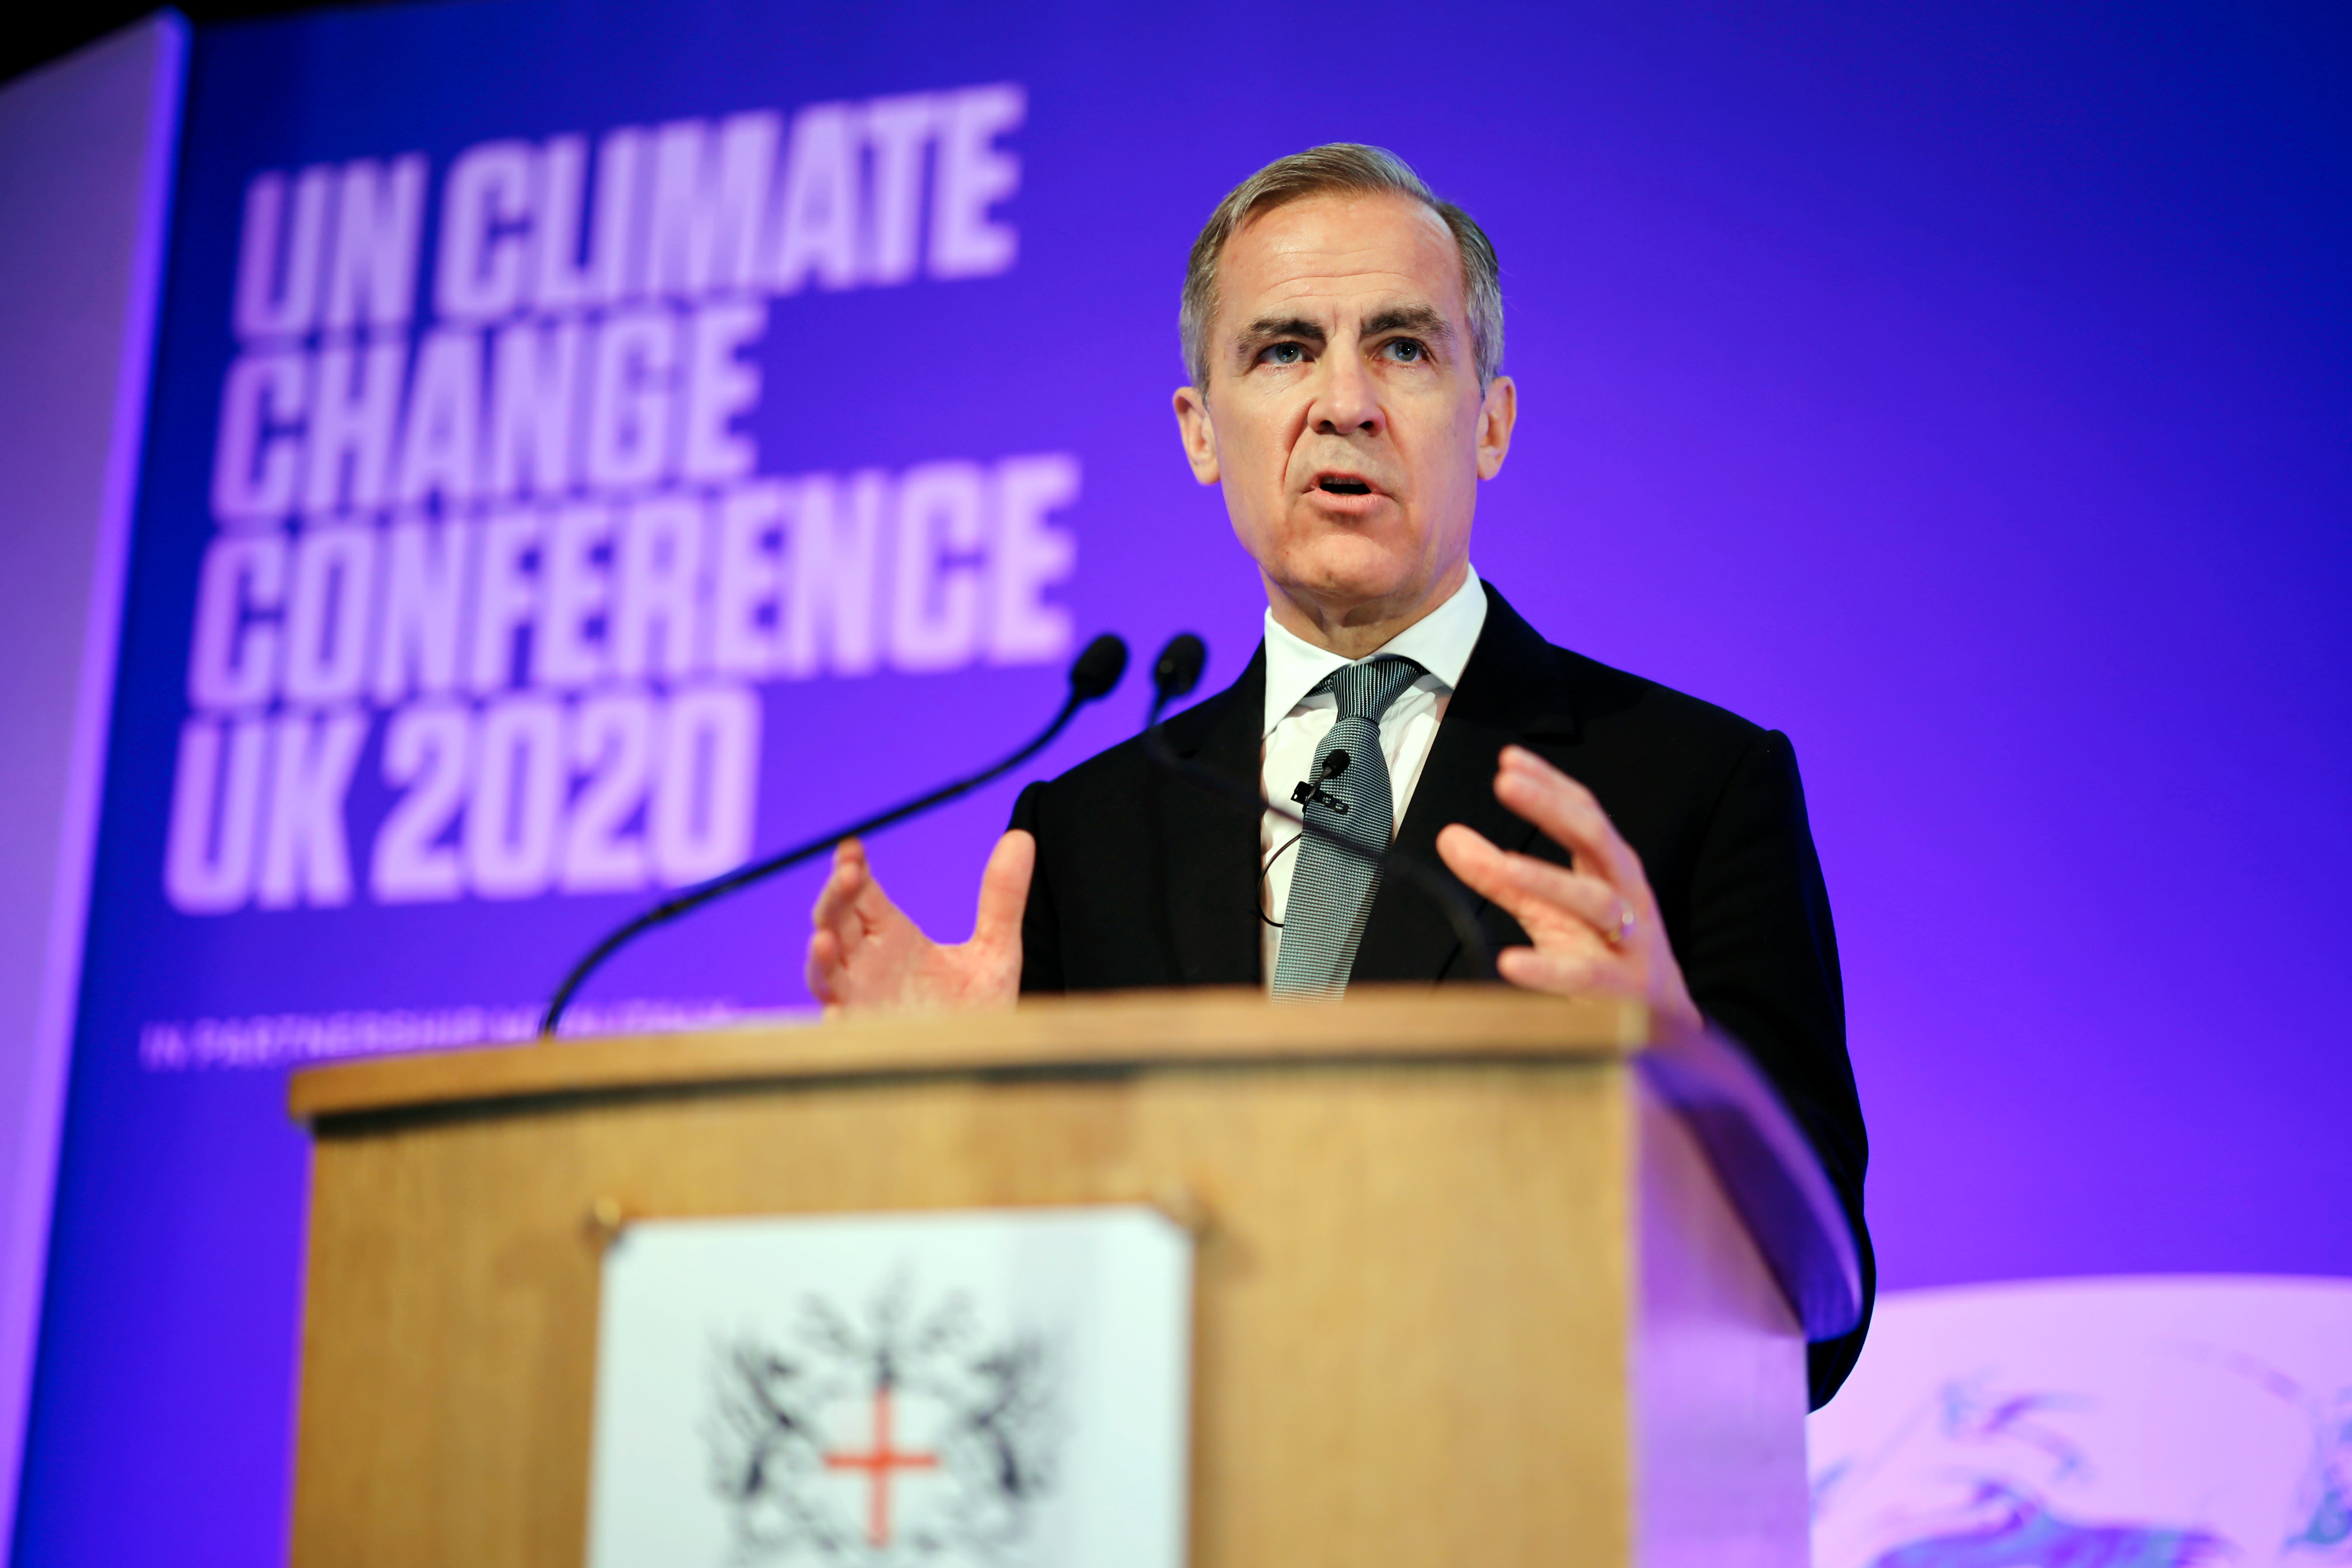 Mark Carney makes a keynote address to launch the private finance agenda for the 2020 United Nations Climate Change Conference (COP26) at Guildhall in London, Britain February 27, 2020.